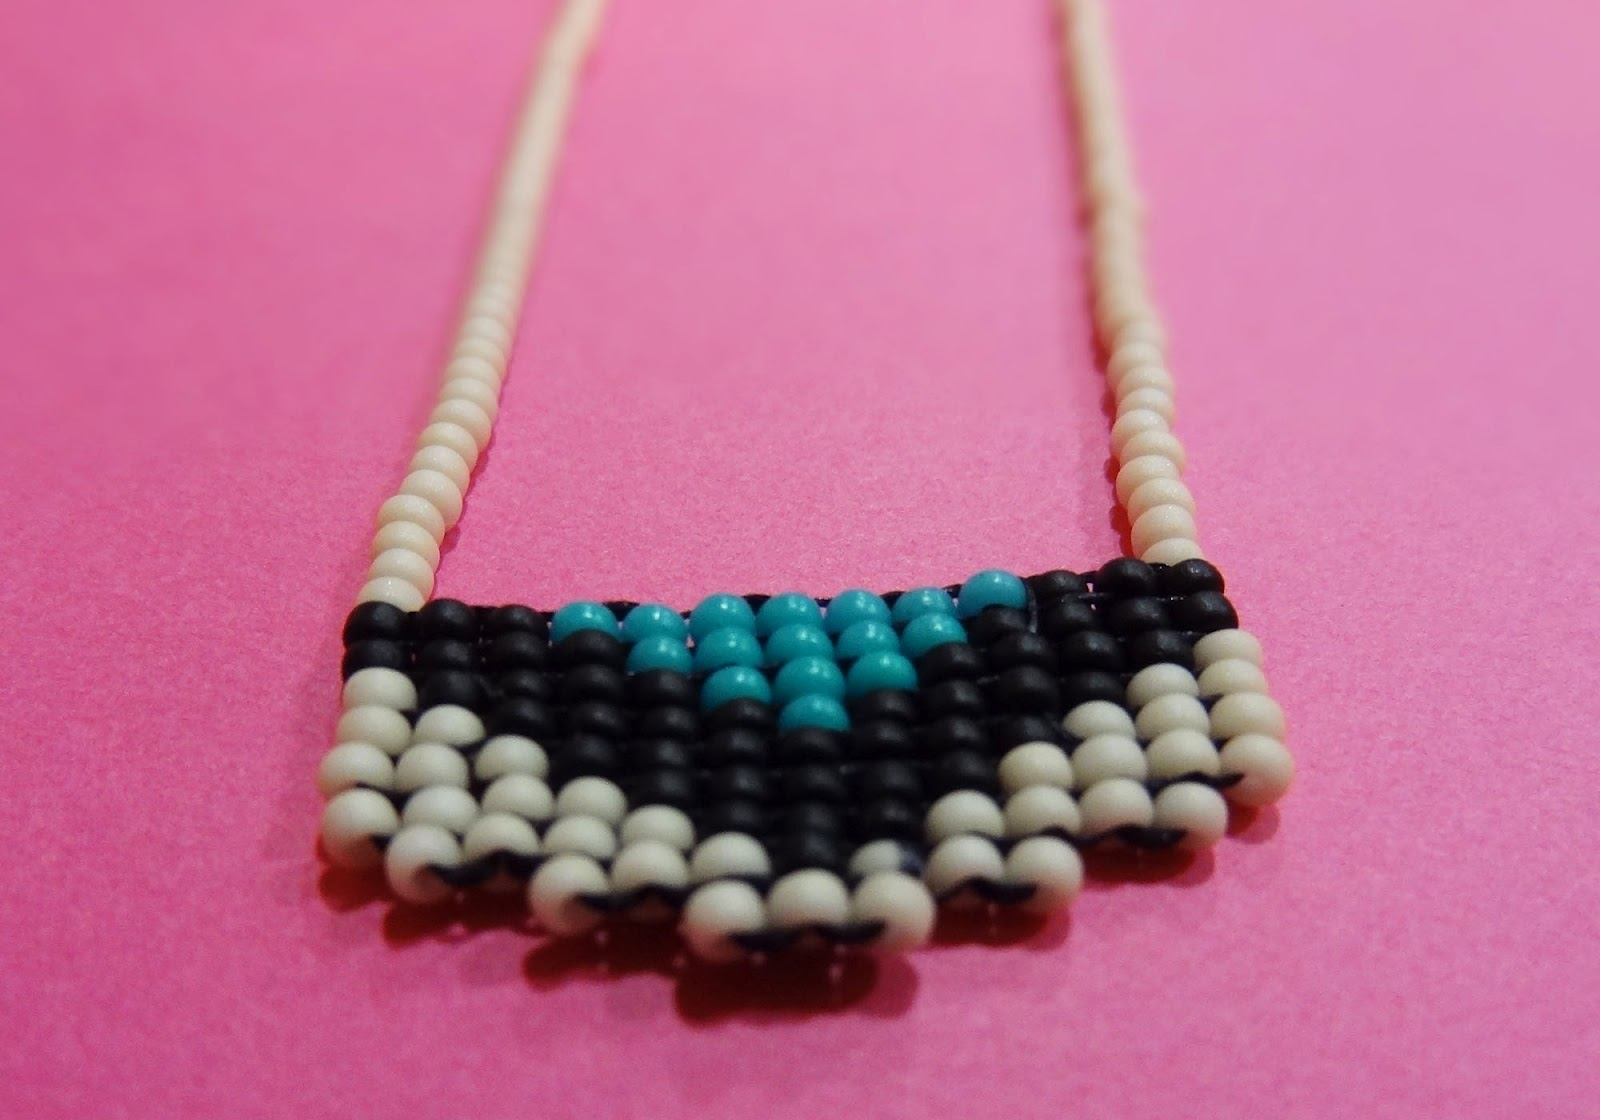 Off Loom Bead Weaving Instructions http://boreddoe.blogspot.com/2012/05/off-loom-beading.html